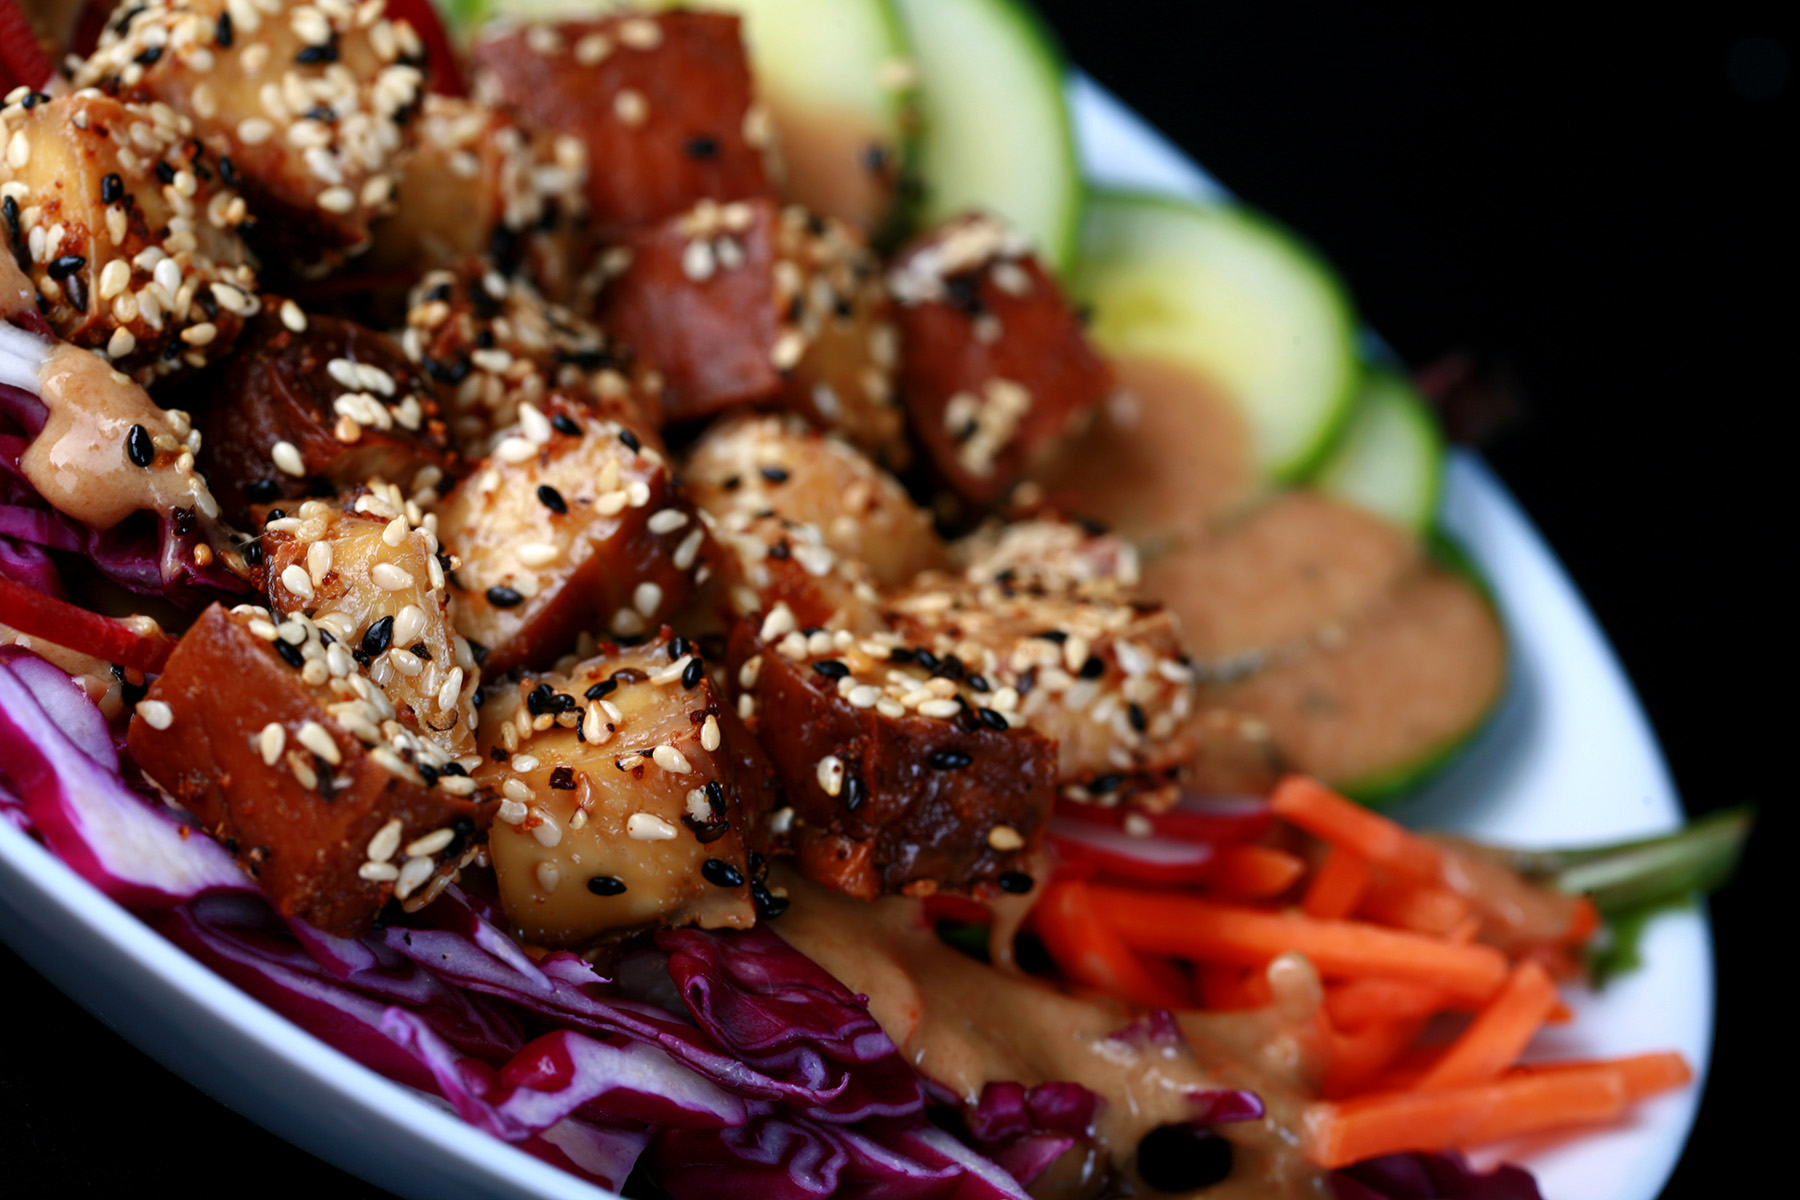 sesame crusted smoked tofu on top of a colourful salad. Cucumbers, beets, carrots, and purple cabbage are visible.